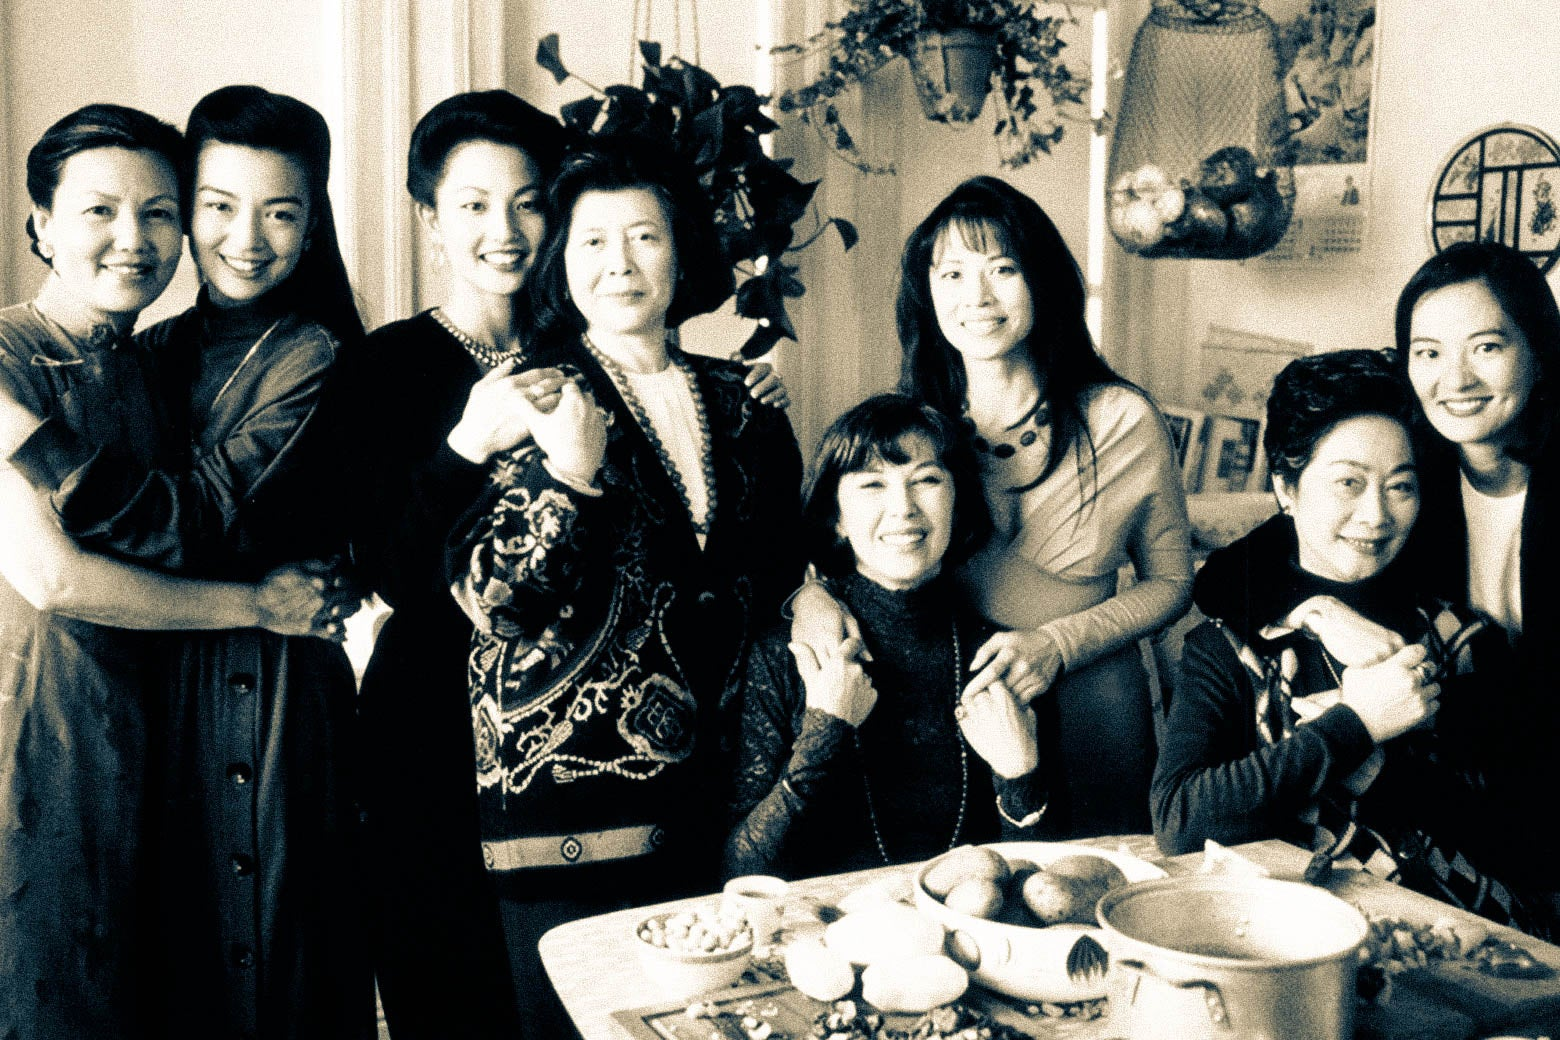 The women of The Joy Luck Club.